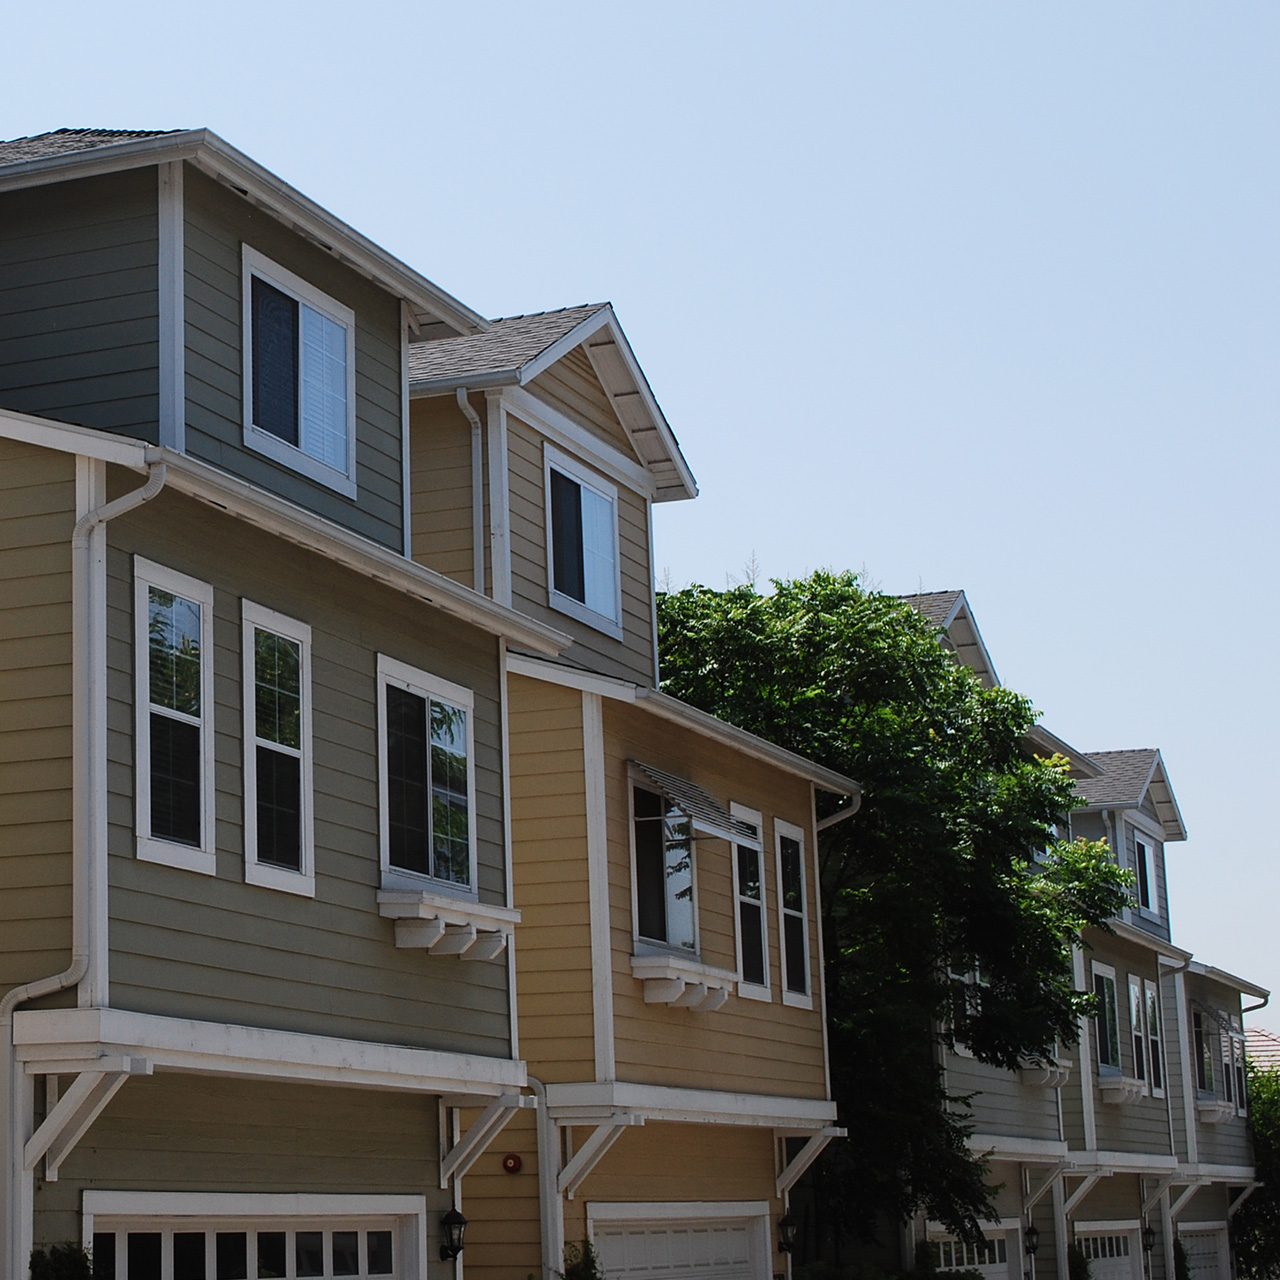 The front of multiple townhomes.